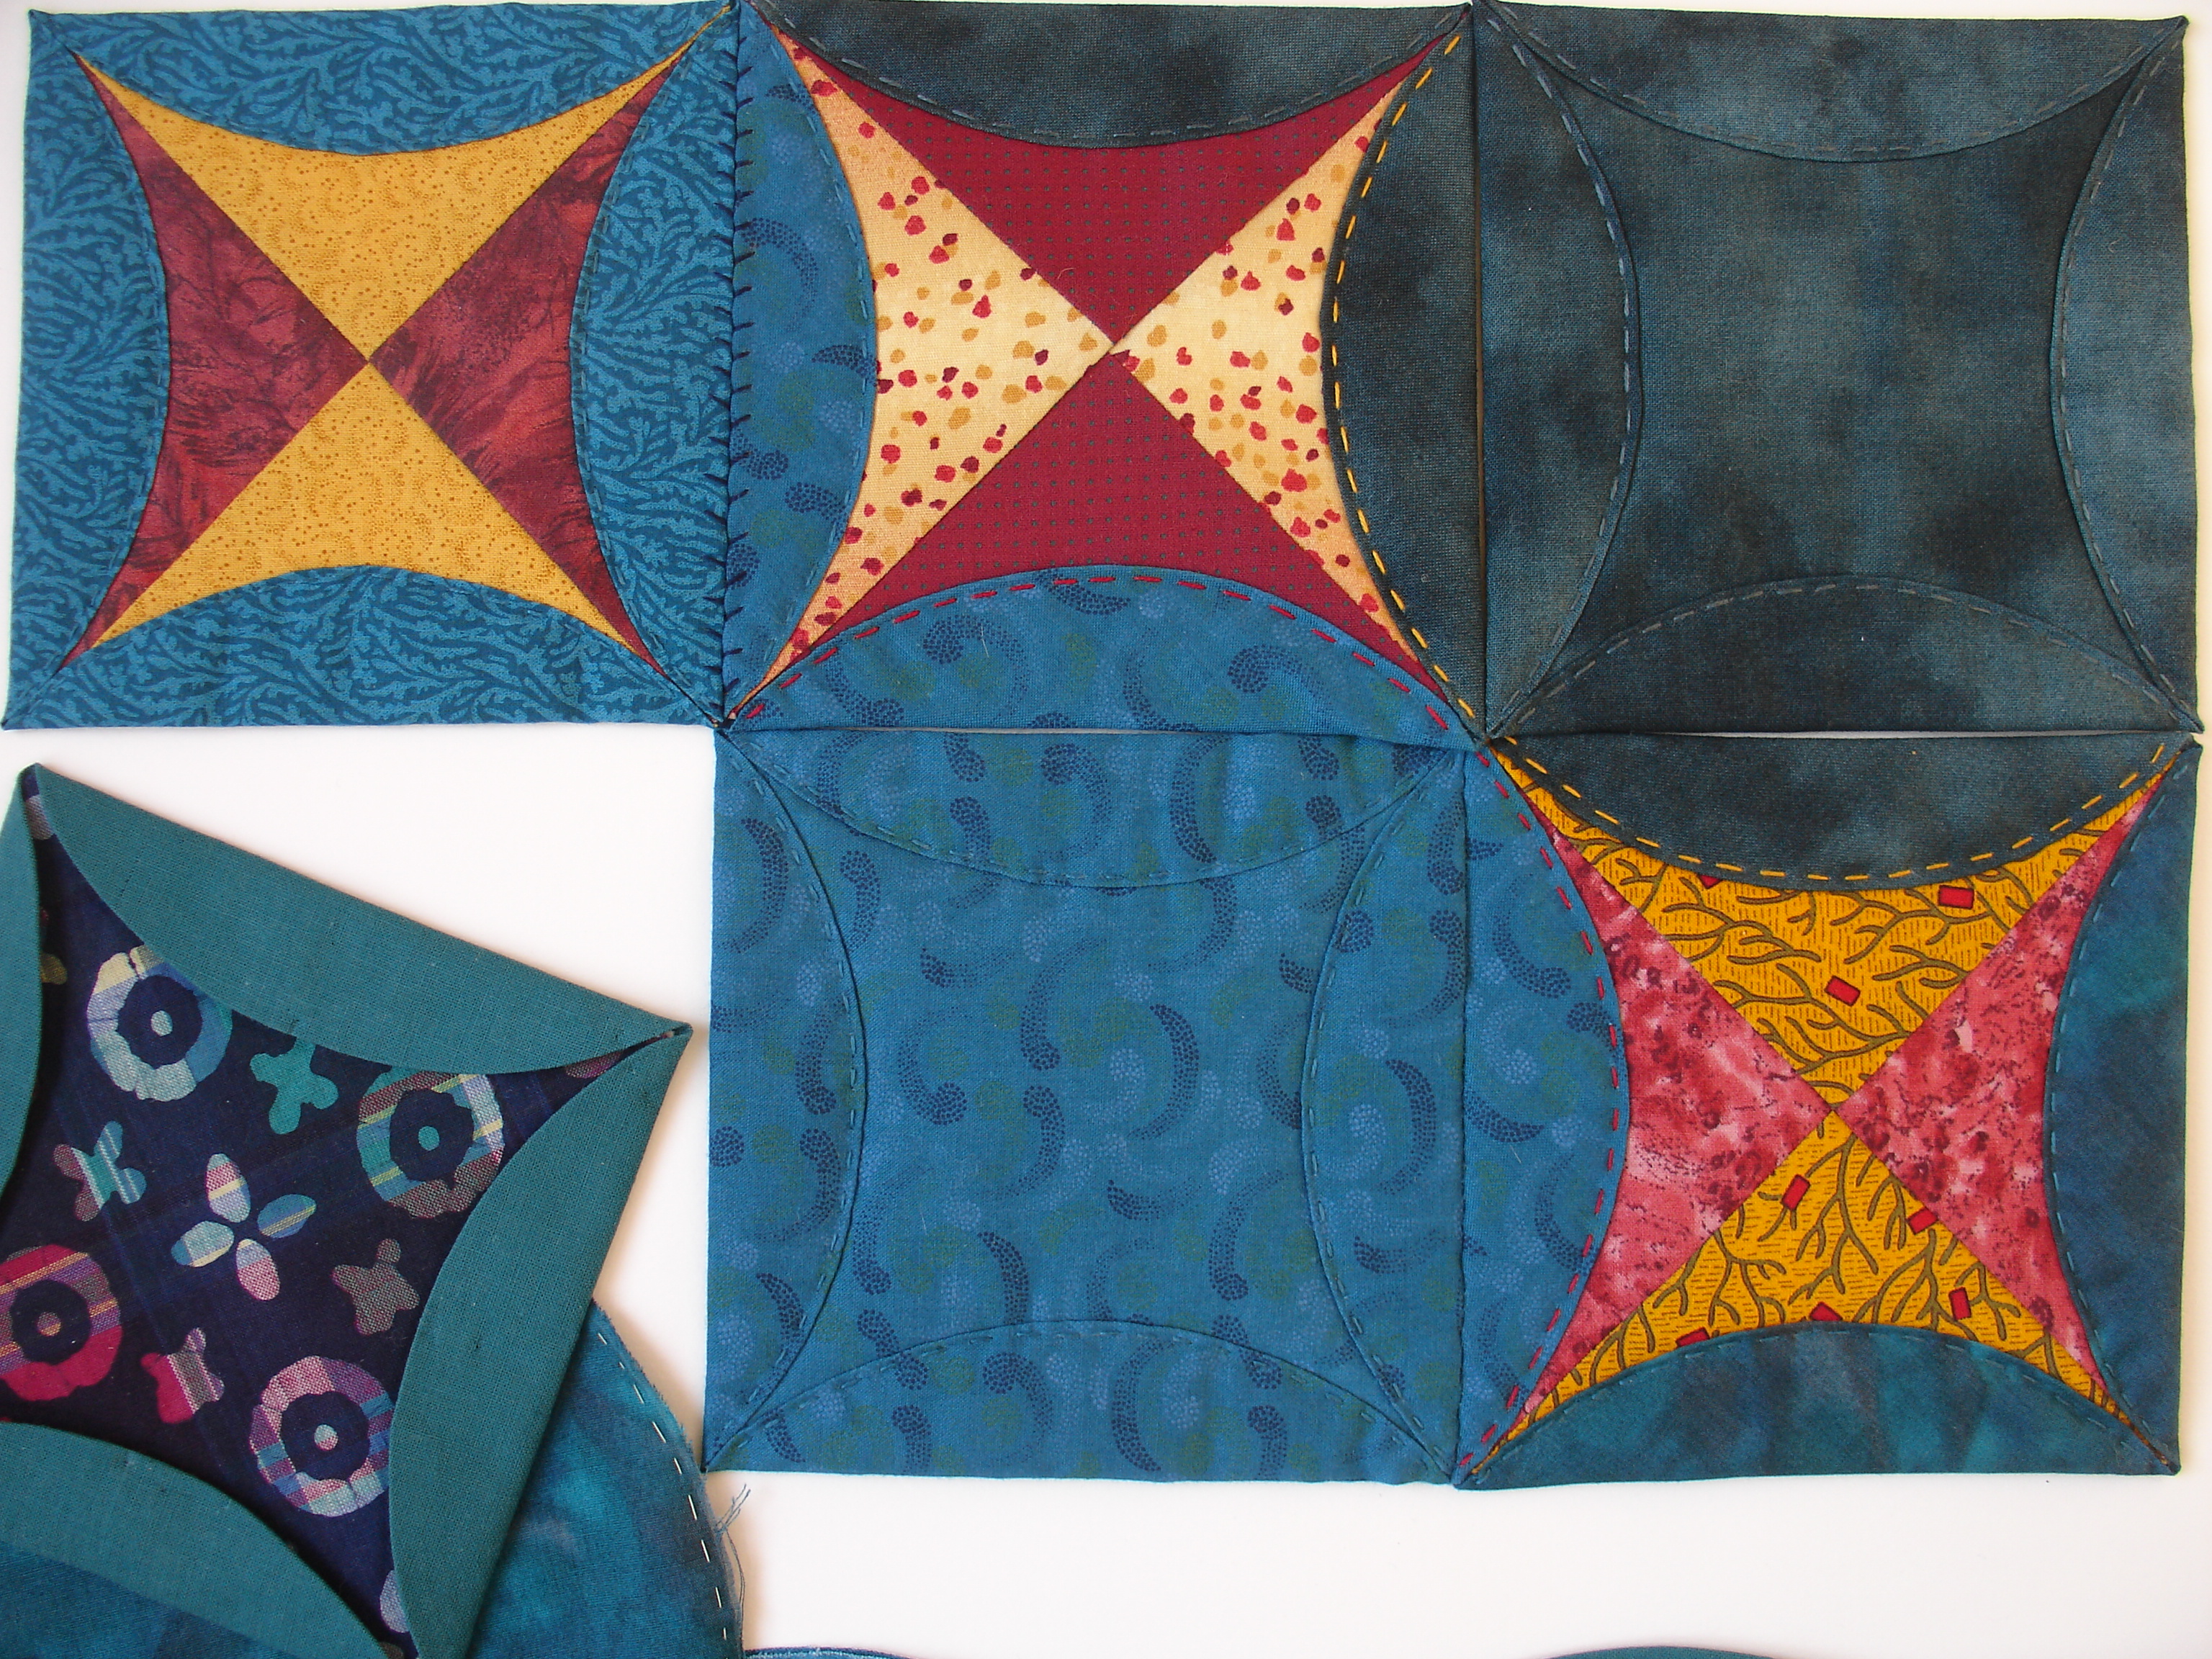 Japanese Patchwork Quilting Course with Niki Chandler at Cambridge Art Makers